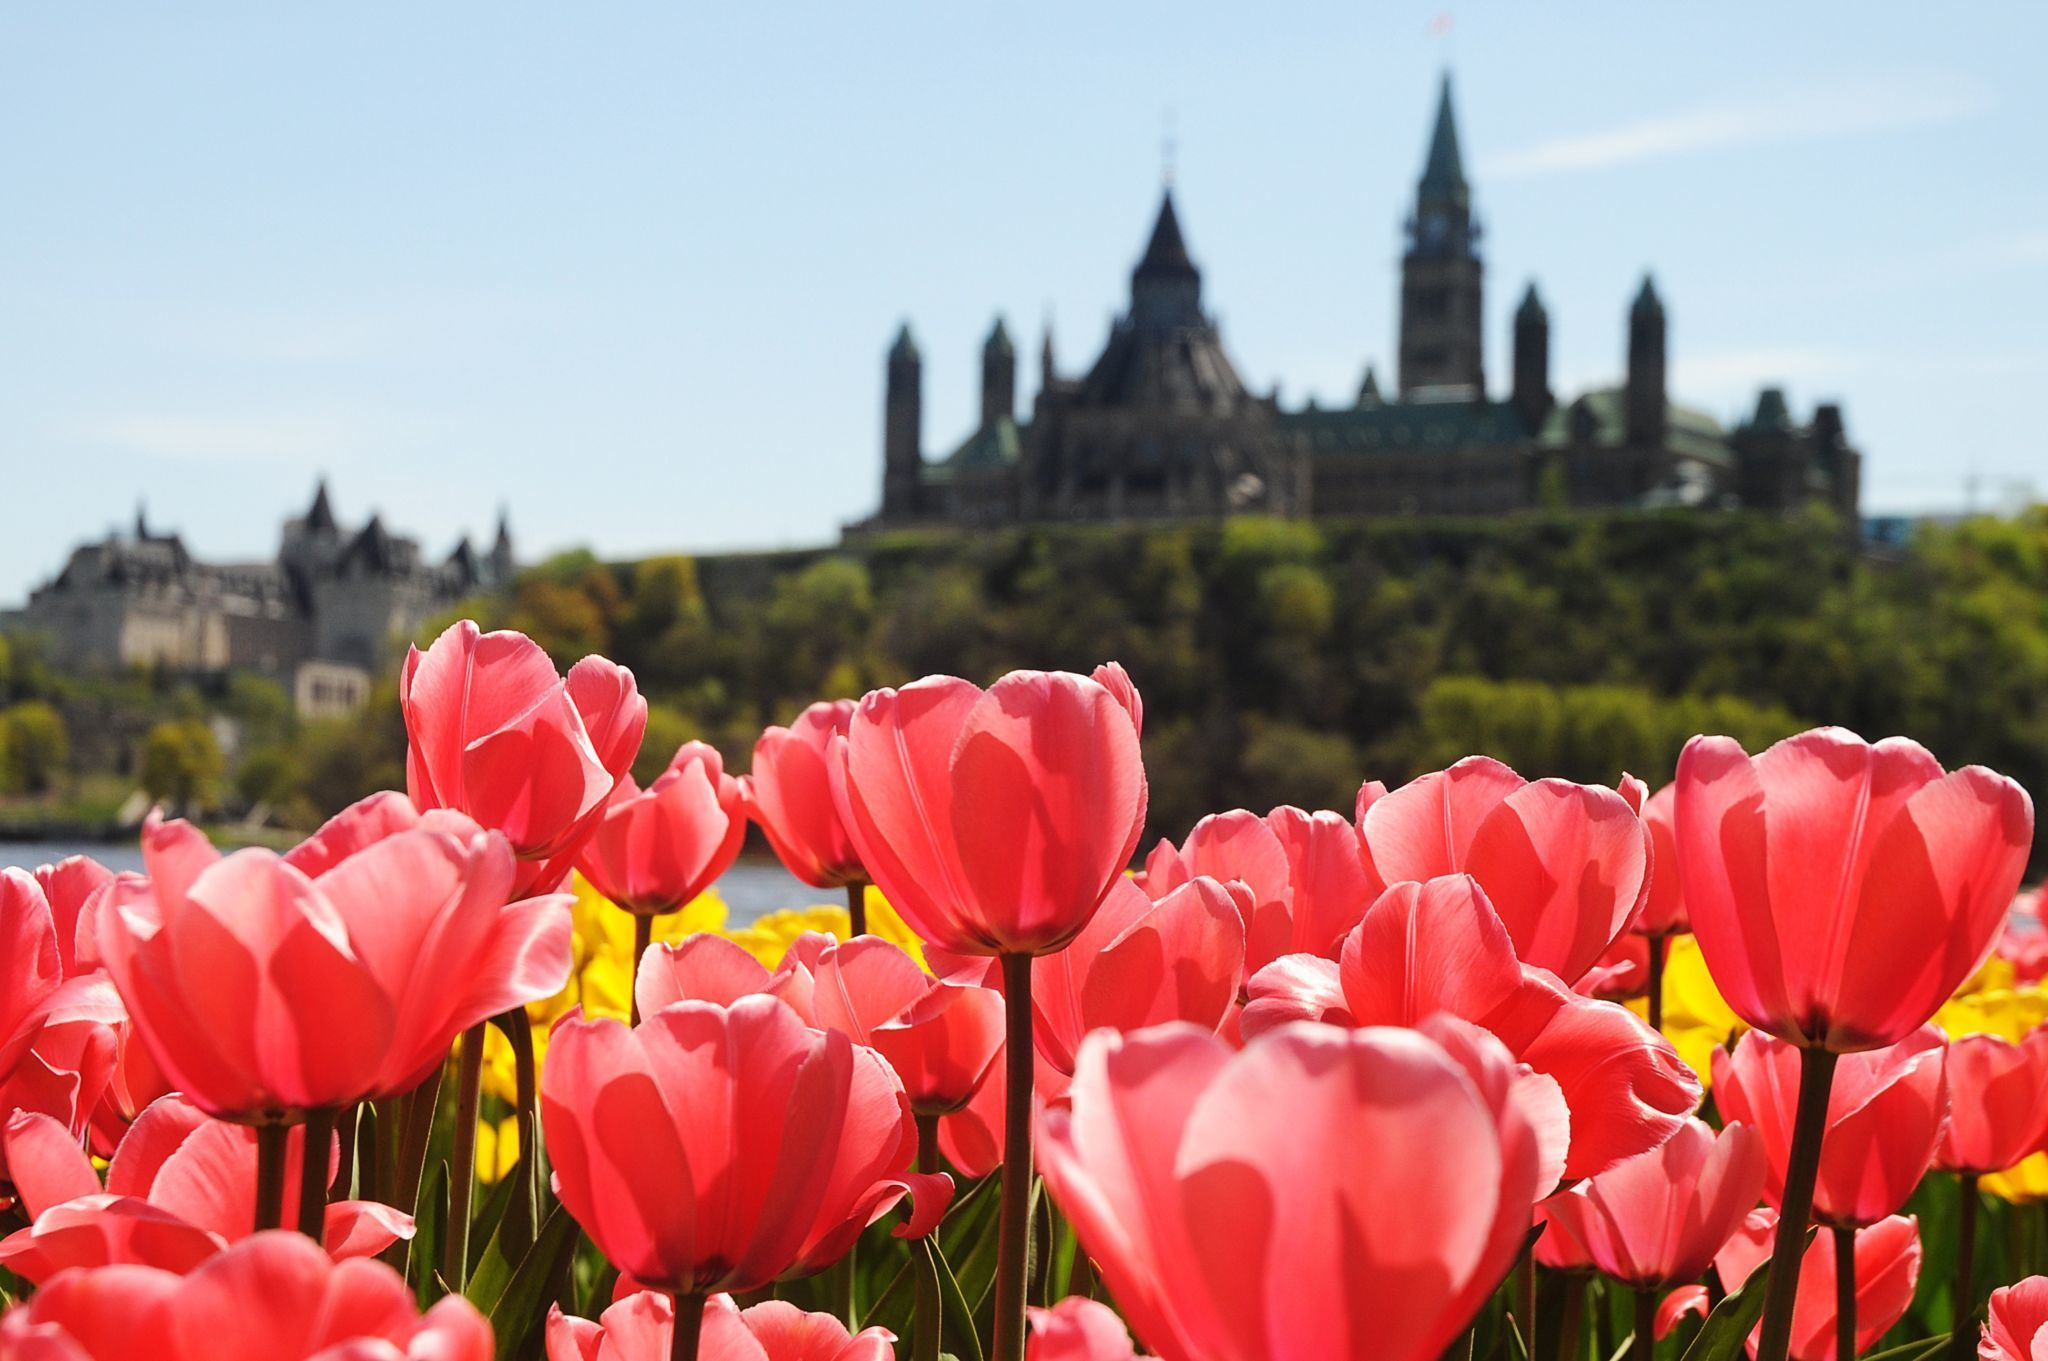 Tulips with the Parliament building in the background